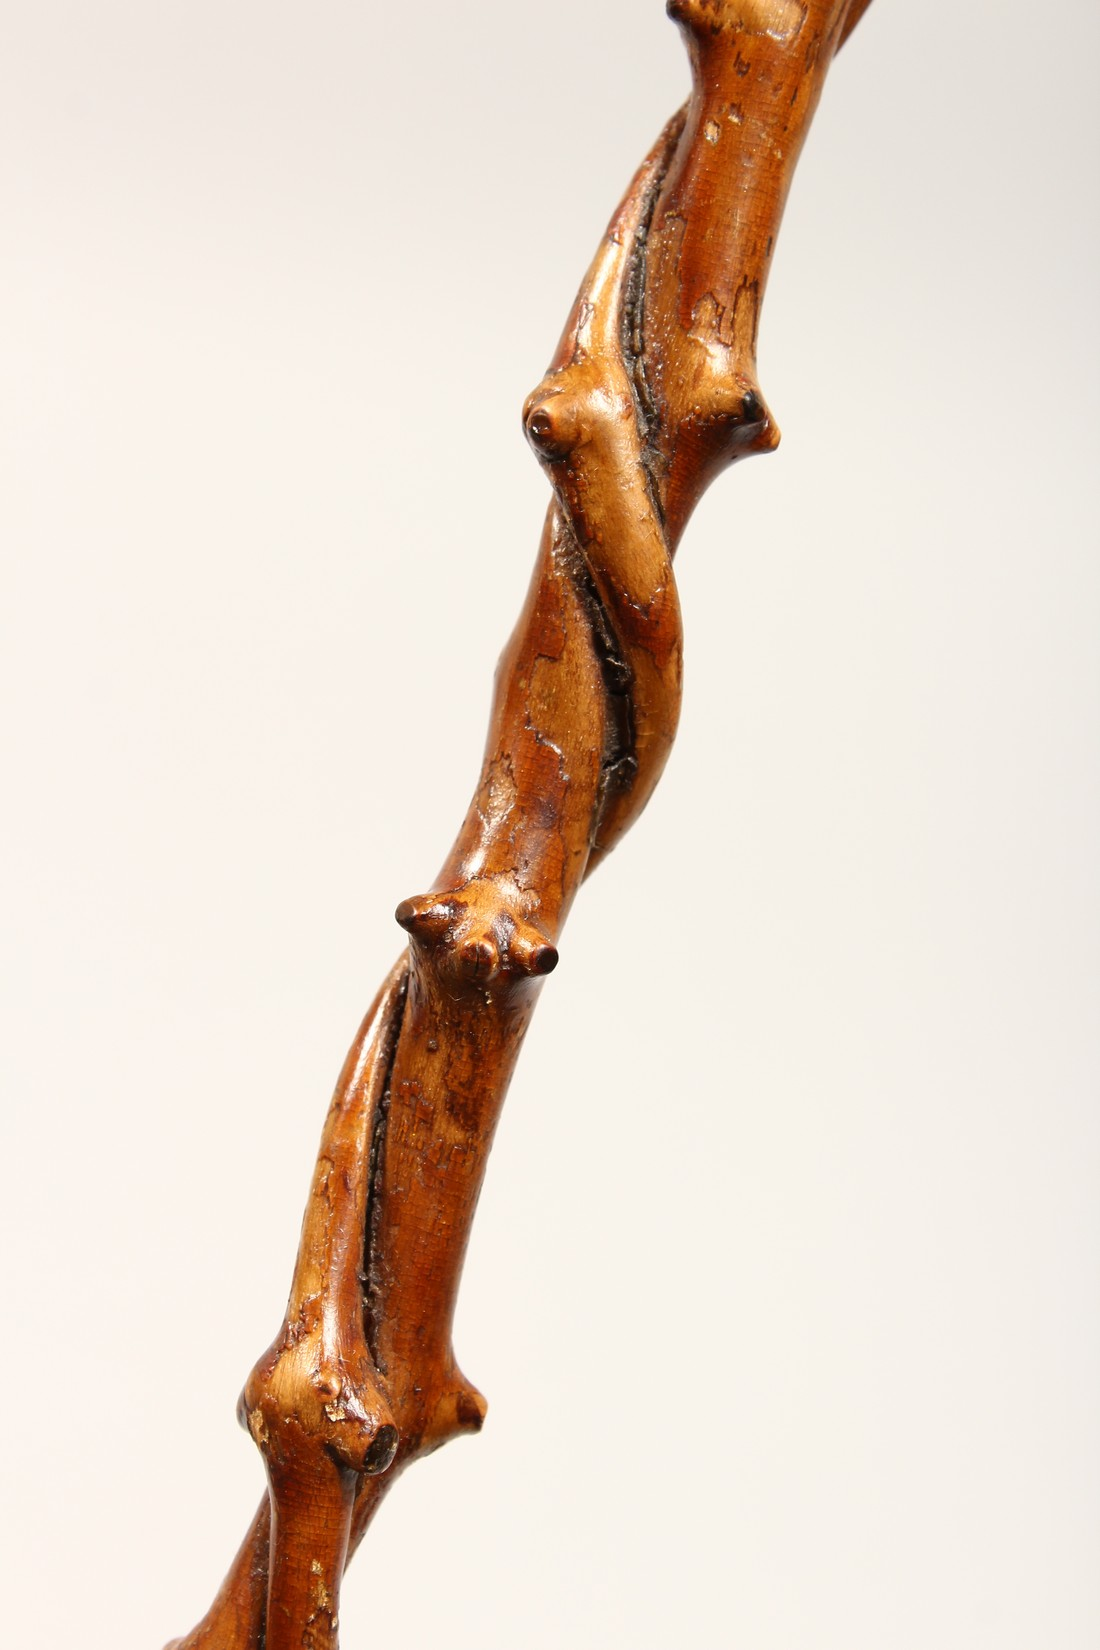 A SMALL DOG'S HEAD WALKING STICK 26ins long - Image 9 of 11